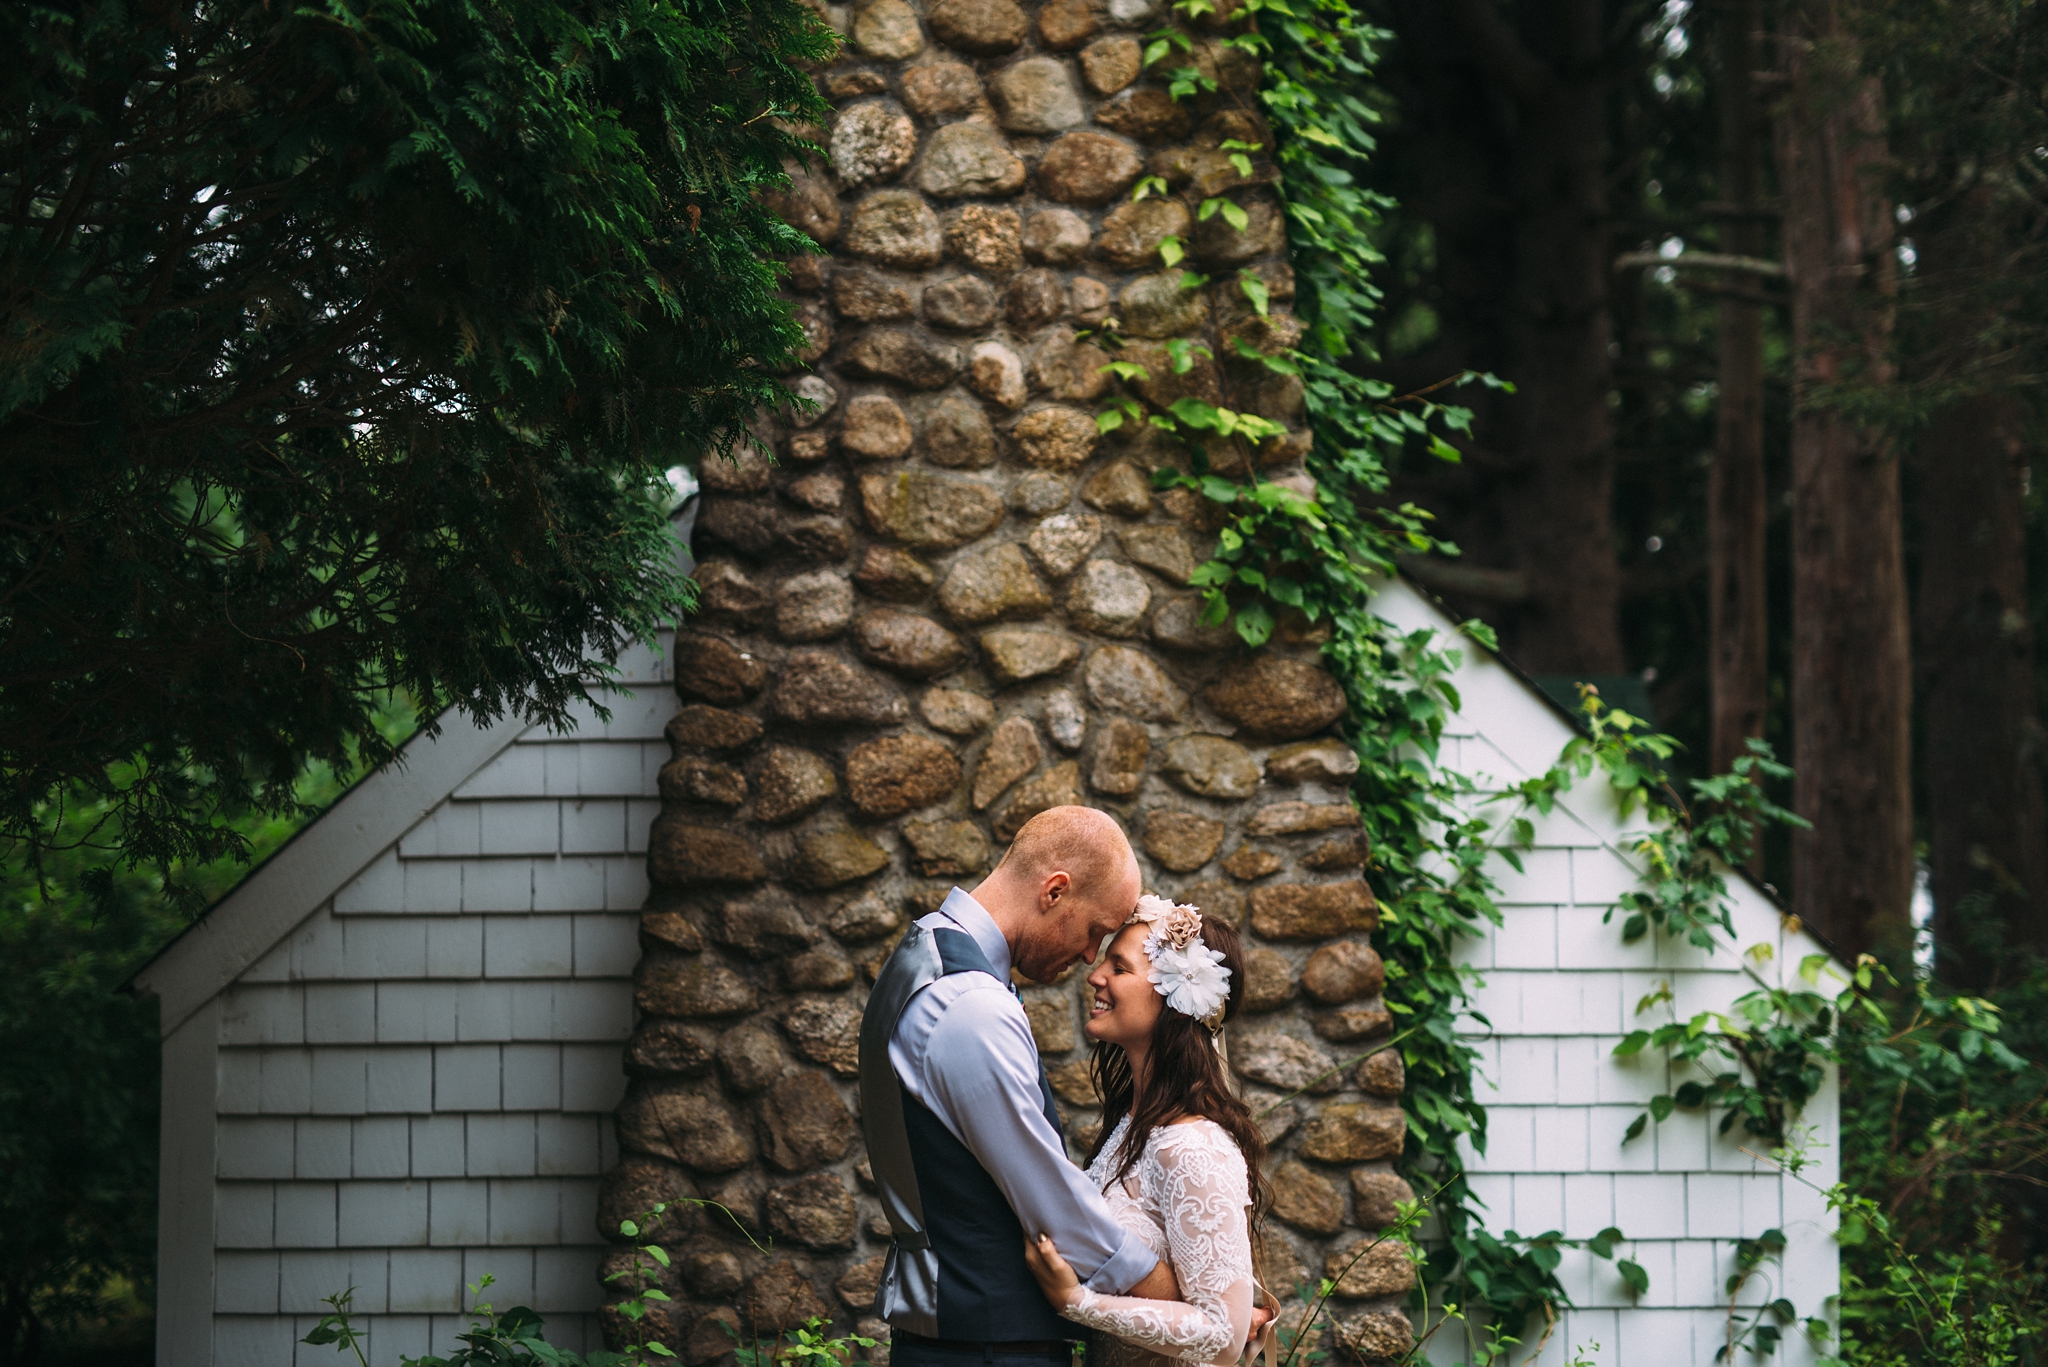 kaihla_tonai_intimate_wedding_elopement_photographer_2124